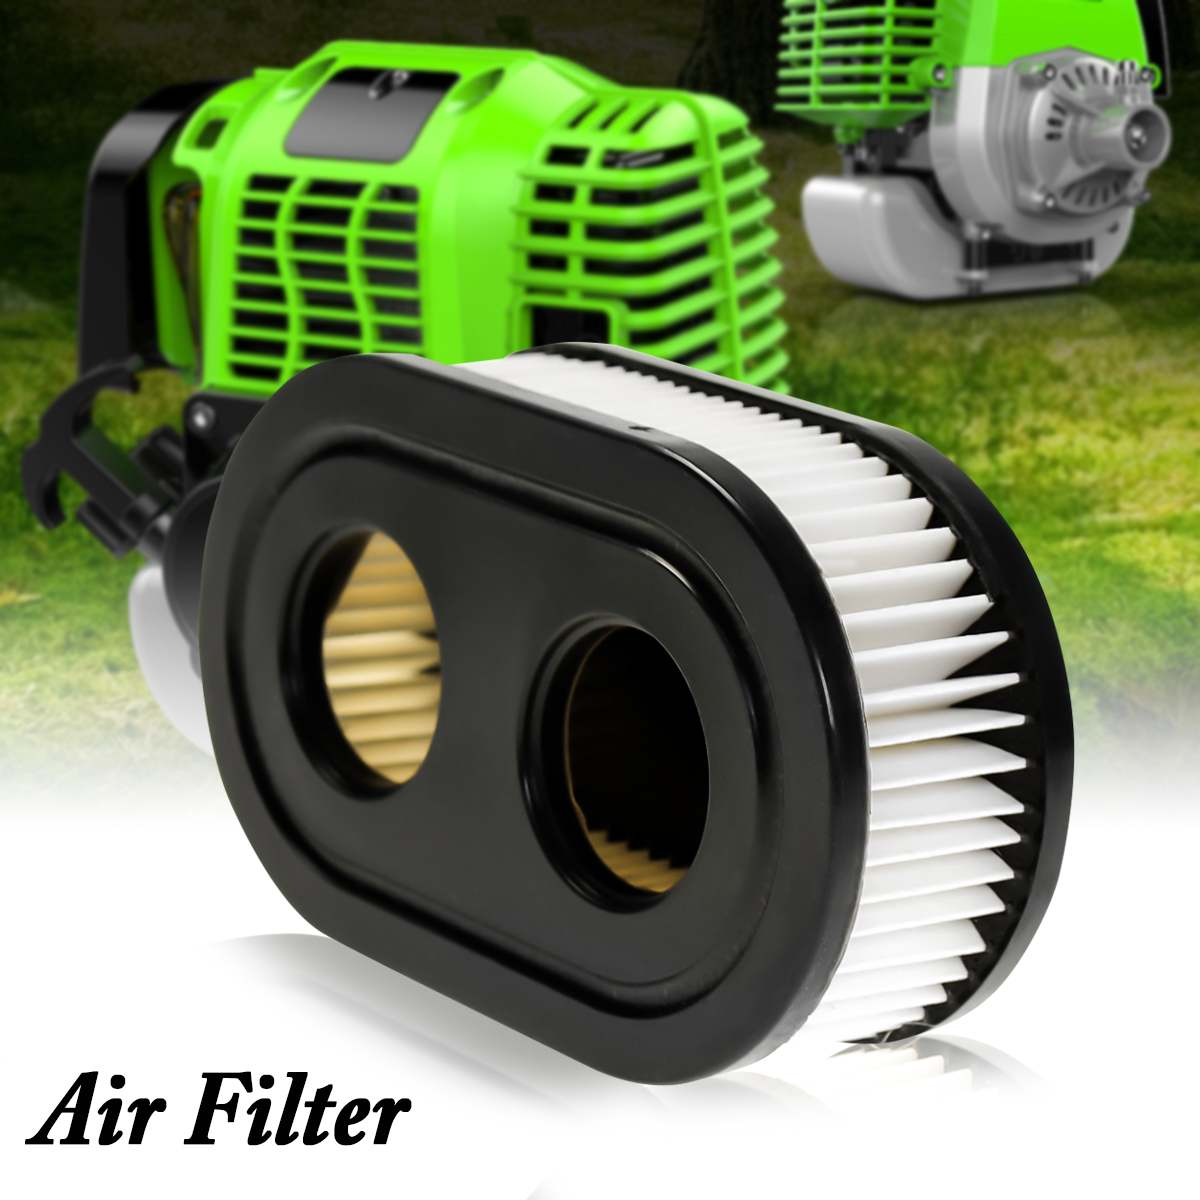 2/5PCS Lawn Mower Air Filter Cleaner For B & S 4247 5432 5432K 593260 798452 09P702 Replacement